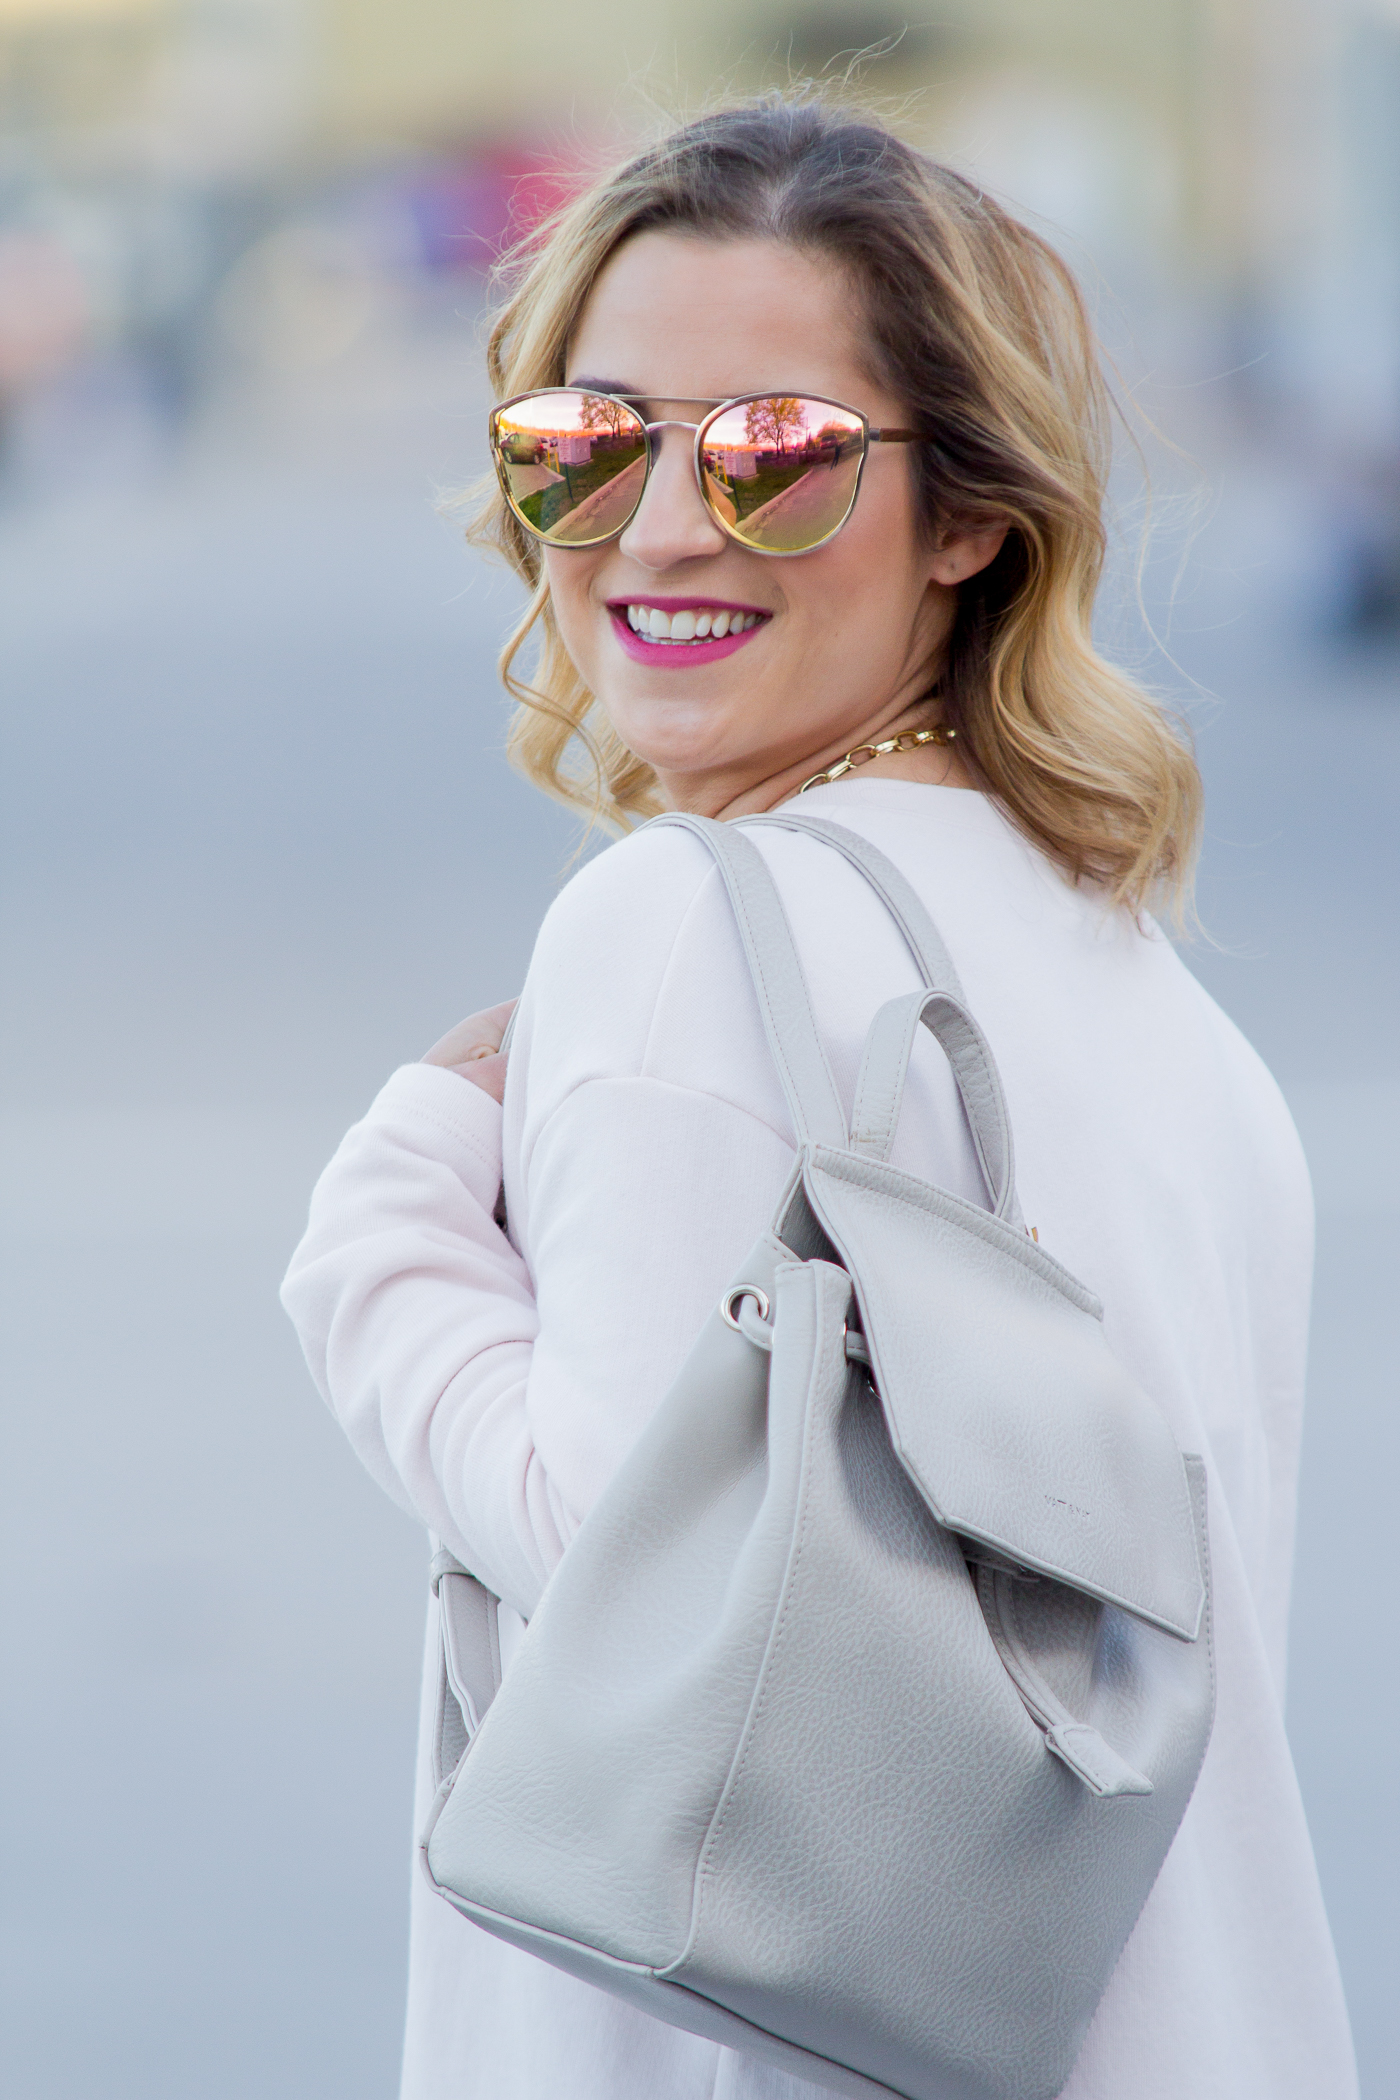 Jackie Goldhar is a Toronto-based fashion blogger, and she's wearing a backpack with rose gold sunnies from Quay